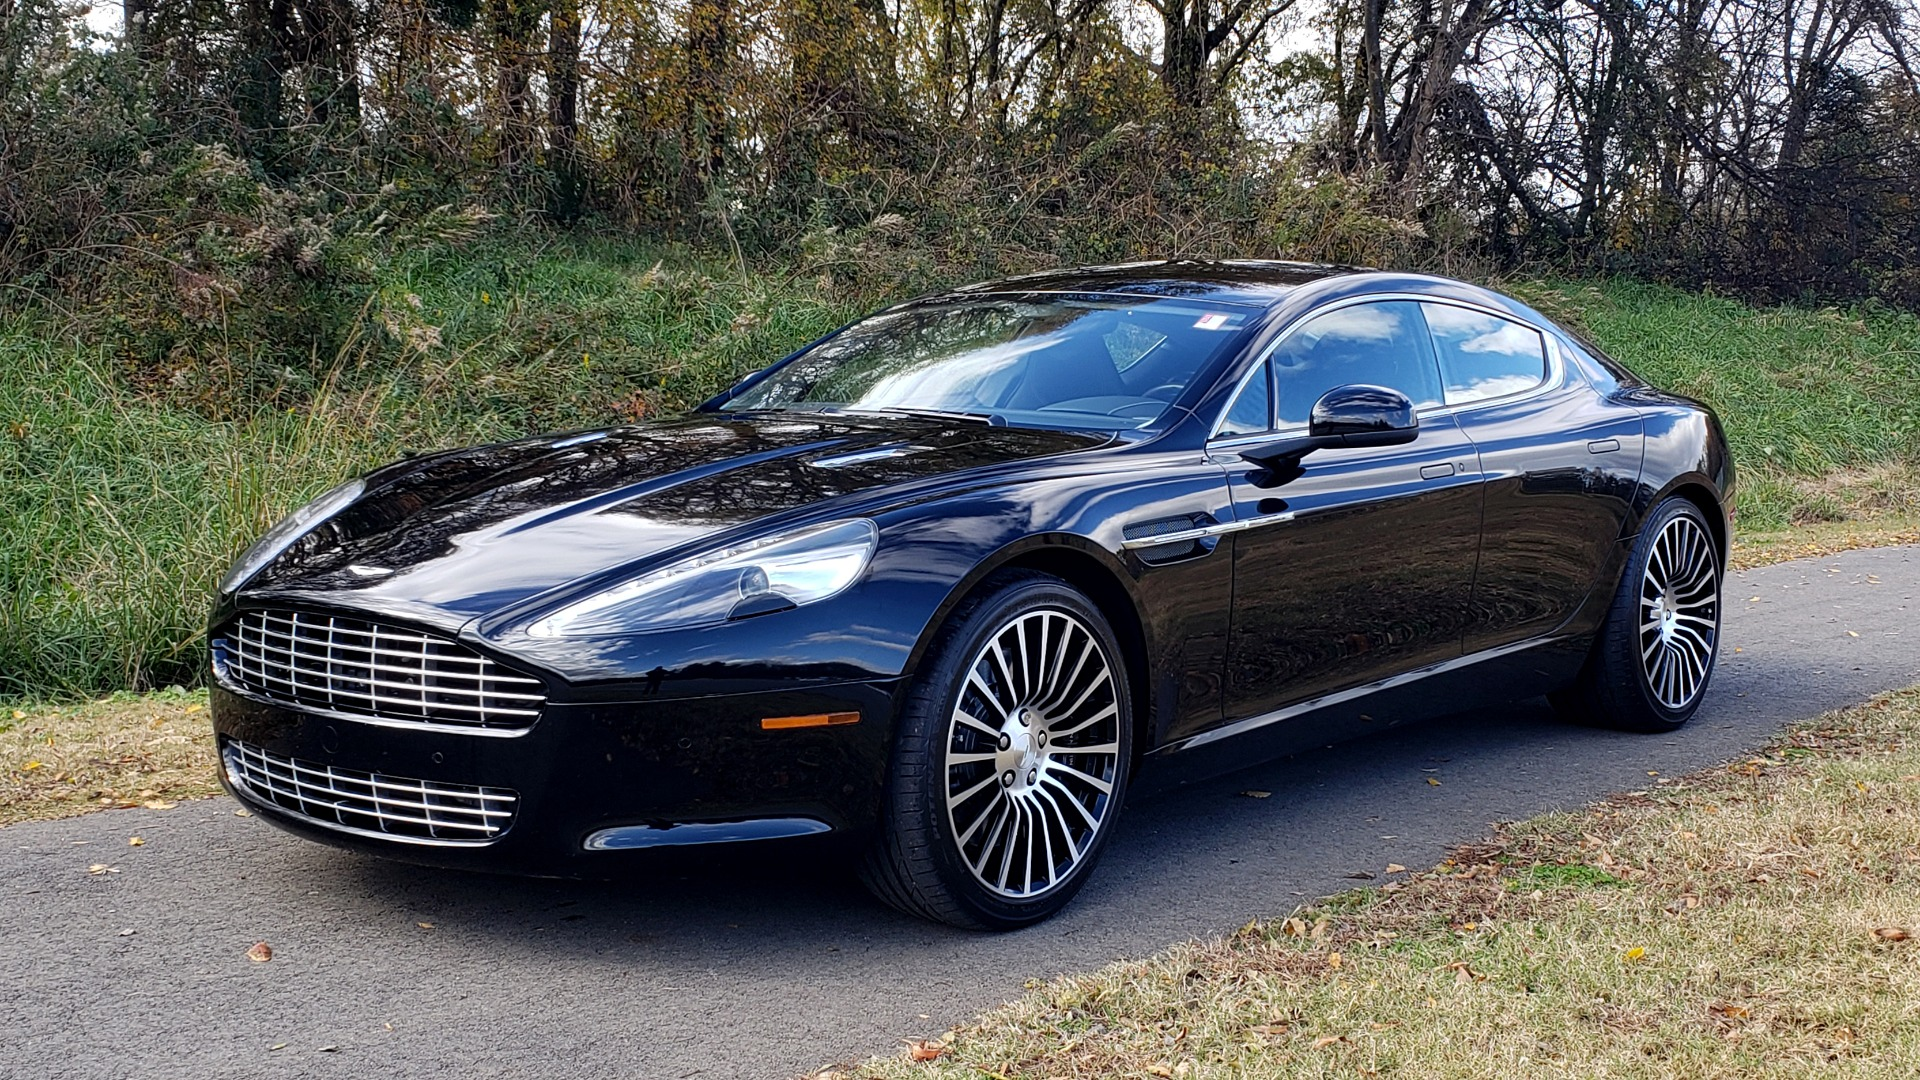 Used 2012 Aston Martin RAPIDE LUXURY 6.0L V12 / NAV / B&O SND / ENTERTAINMENT / REARVIEW for sale Sold at Formula Imports in Charlotte NC 28227 1